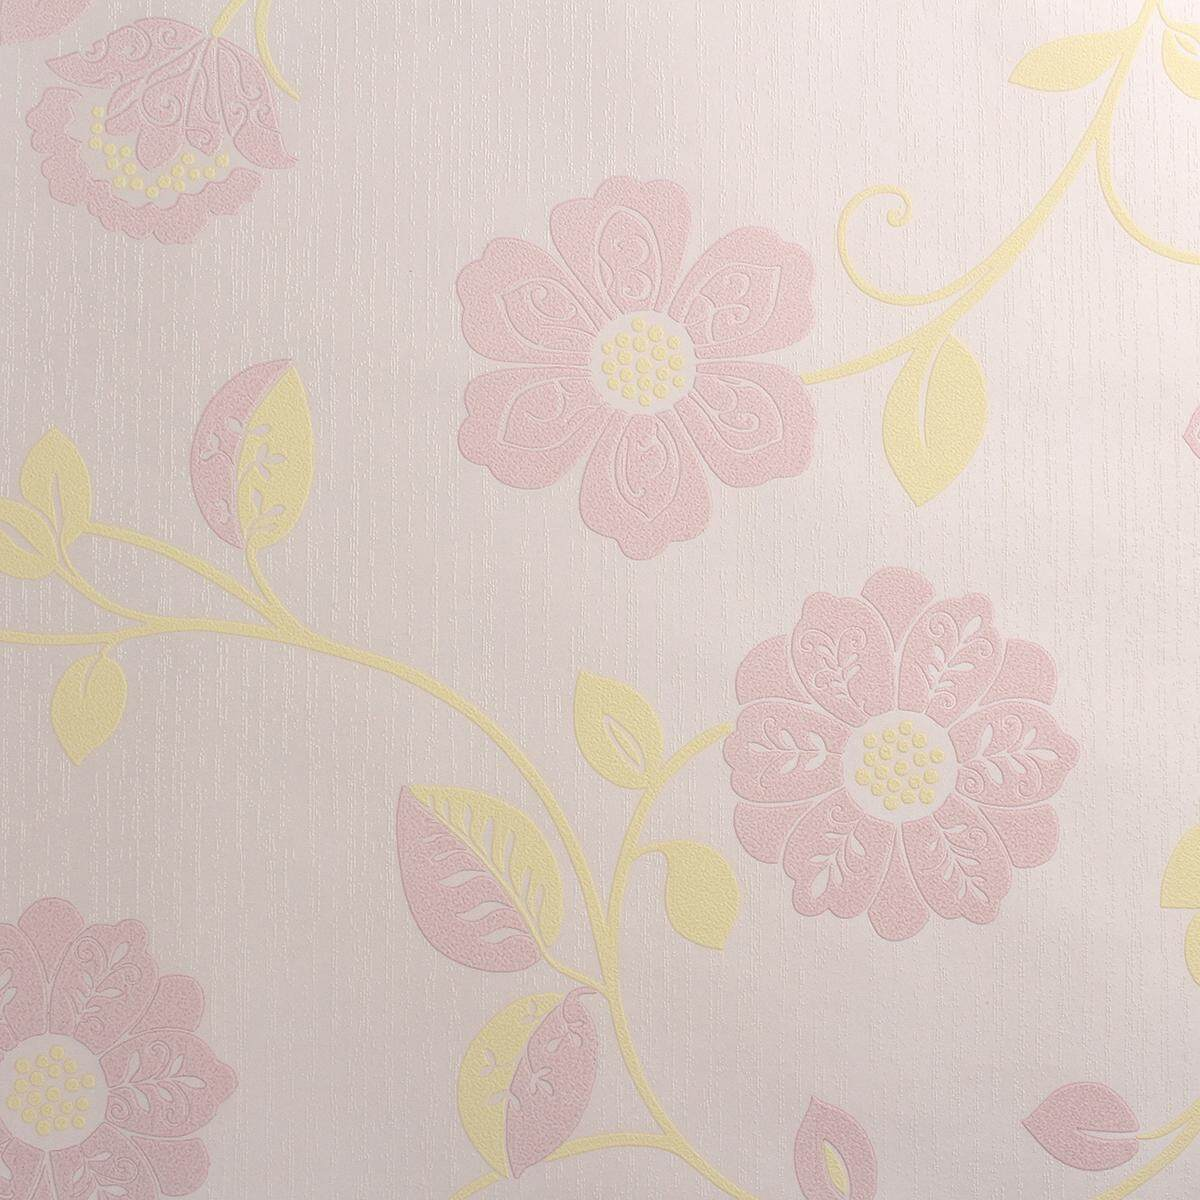 10M Floral 3D Embossed Textured Non-woven Home Room Wallpaper Wall Paper Rolls Pink -